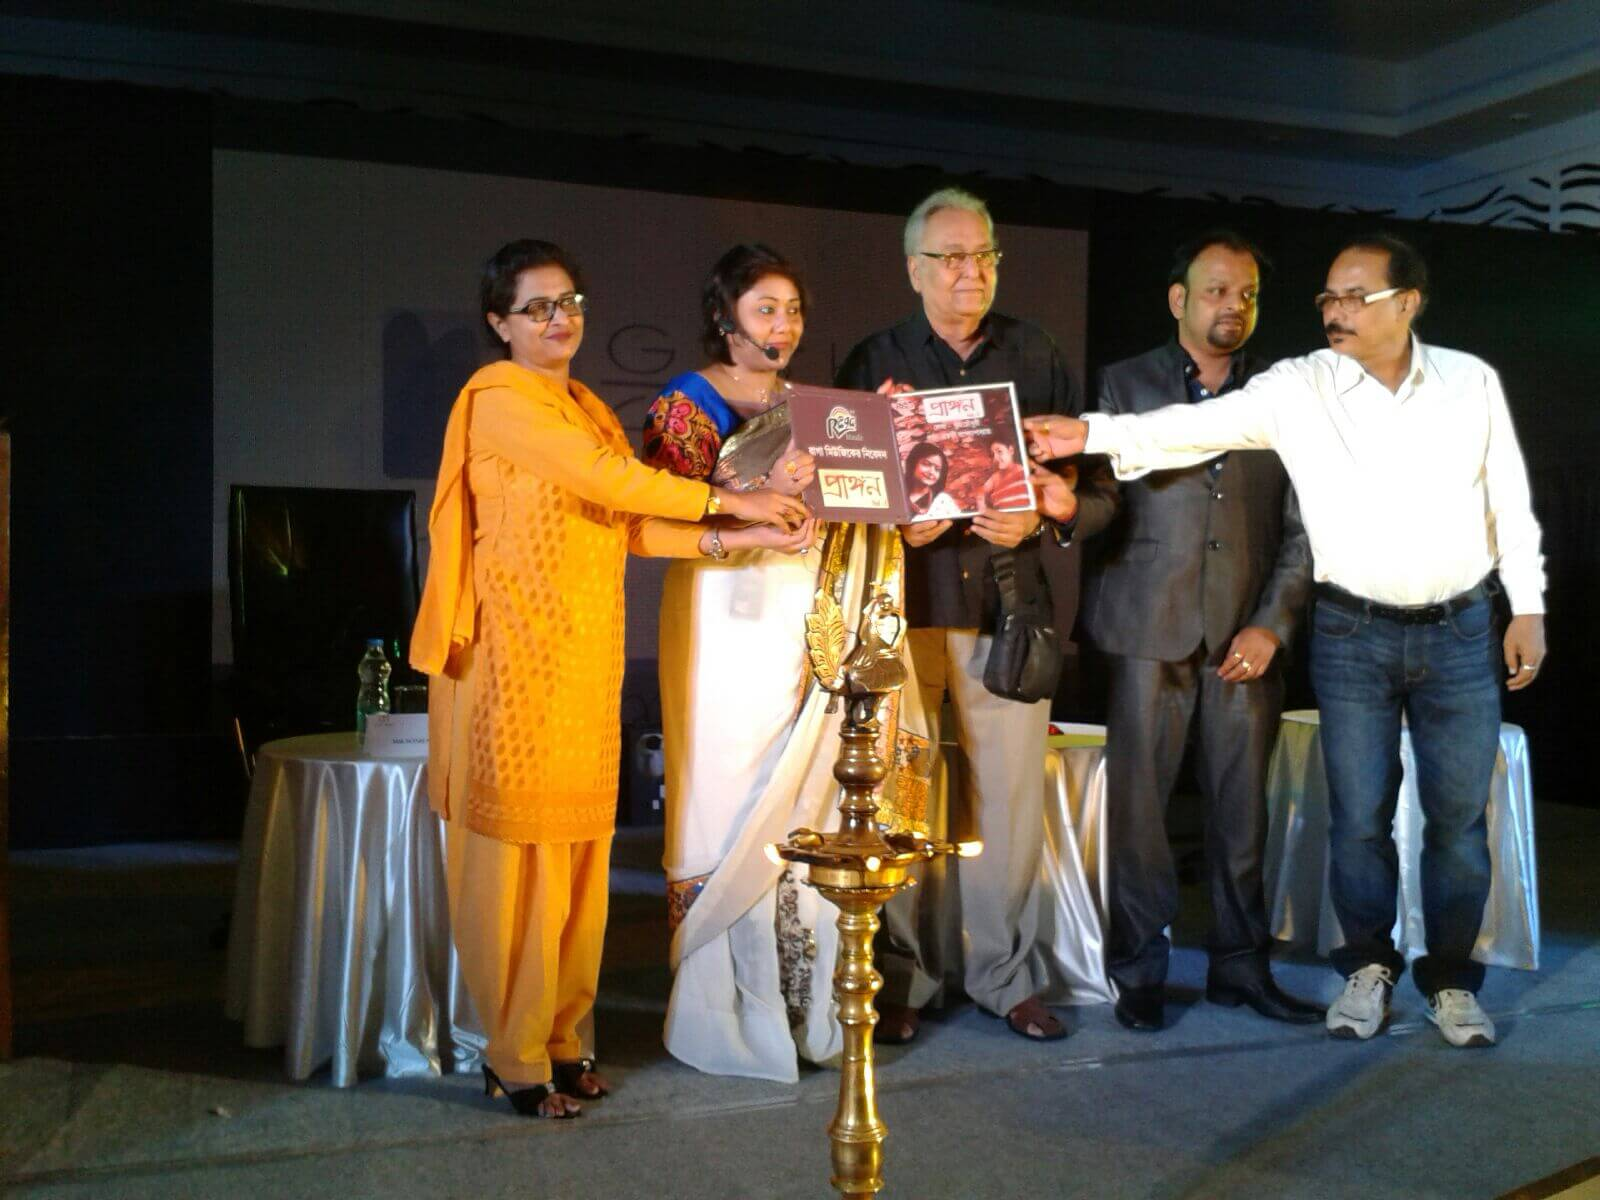 National Award winning actor Mr. Soumitra Chatterjee - at the event of book and cd launch for the book Prangon, published by 24by7Publishing.com.